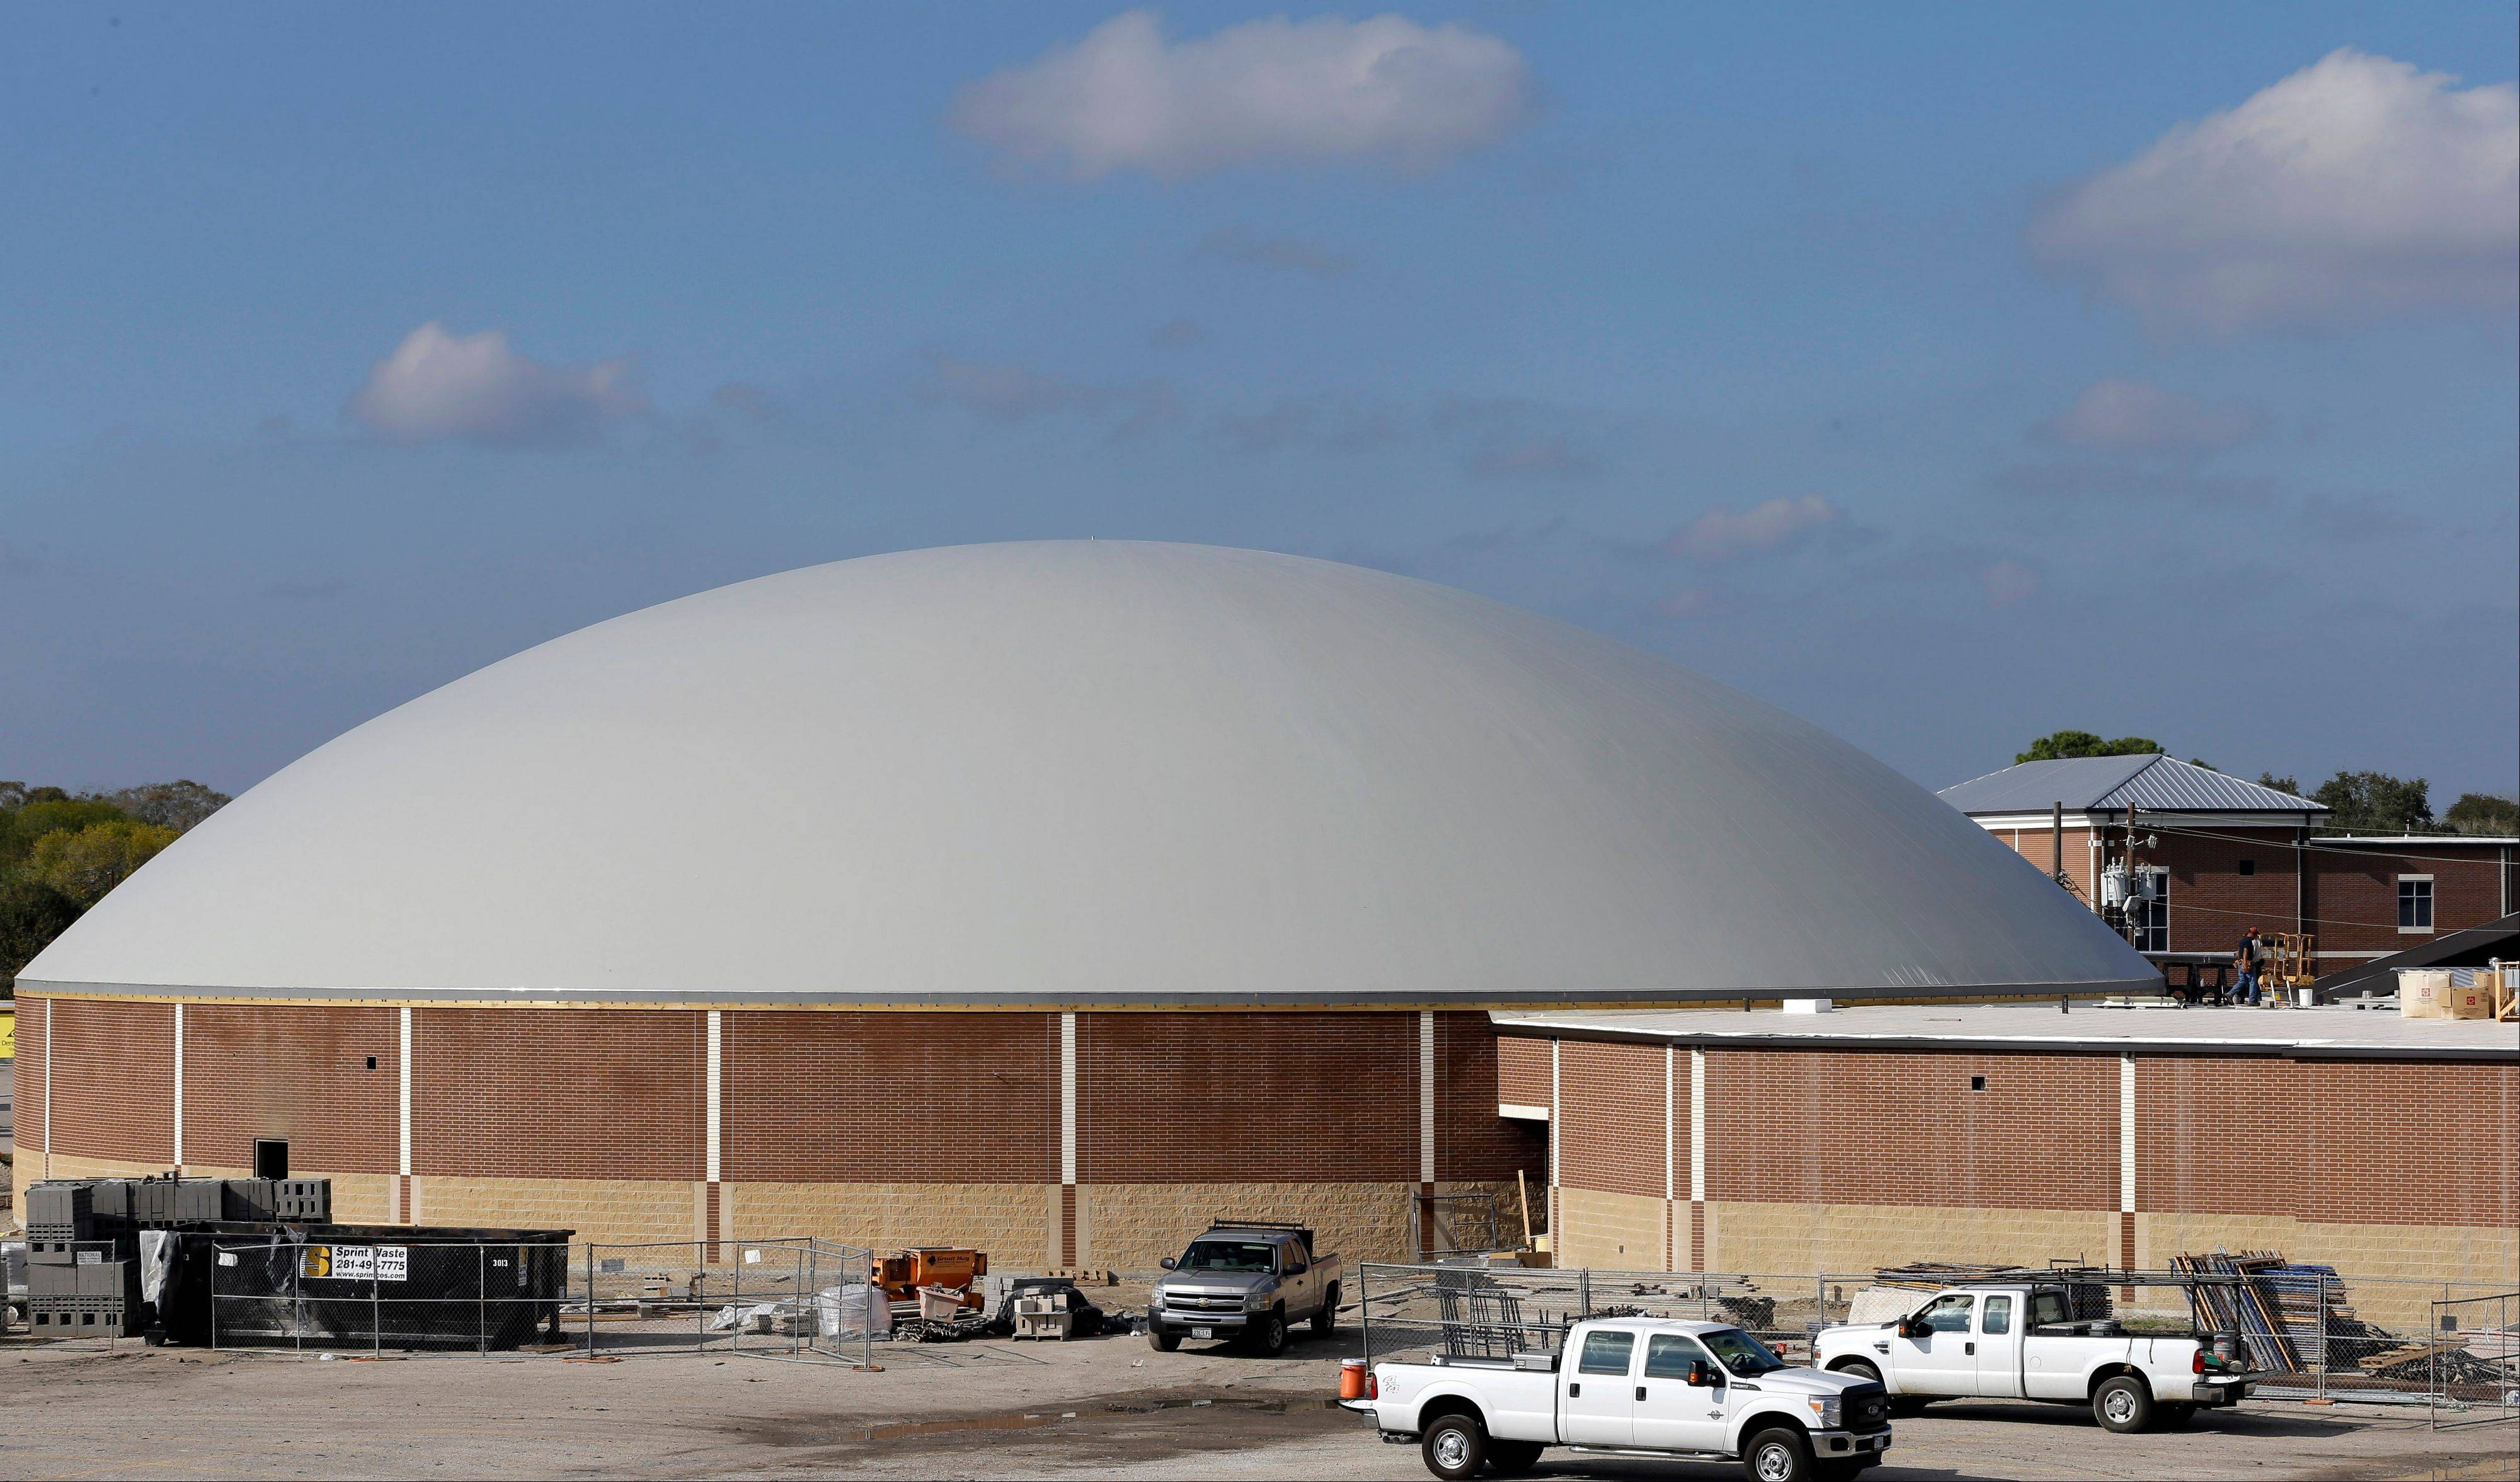 Work continues on the construction of a new domed gym at Edna High School in Edna, Texas. The hurricane dome, a structure being built in part with money from the Federal Emergency Management Agency, can be used to house first responders or residents evacuated during a storm.